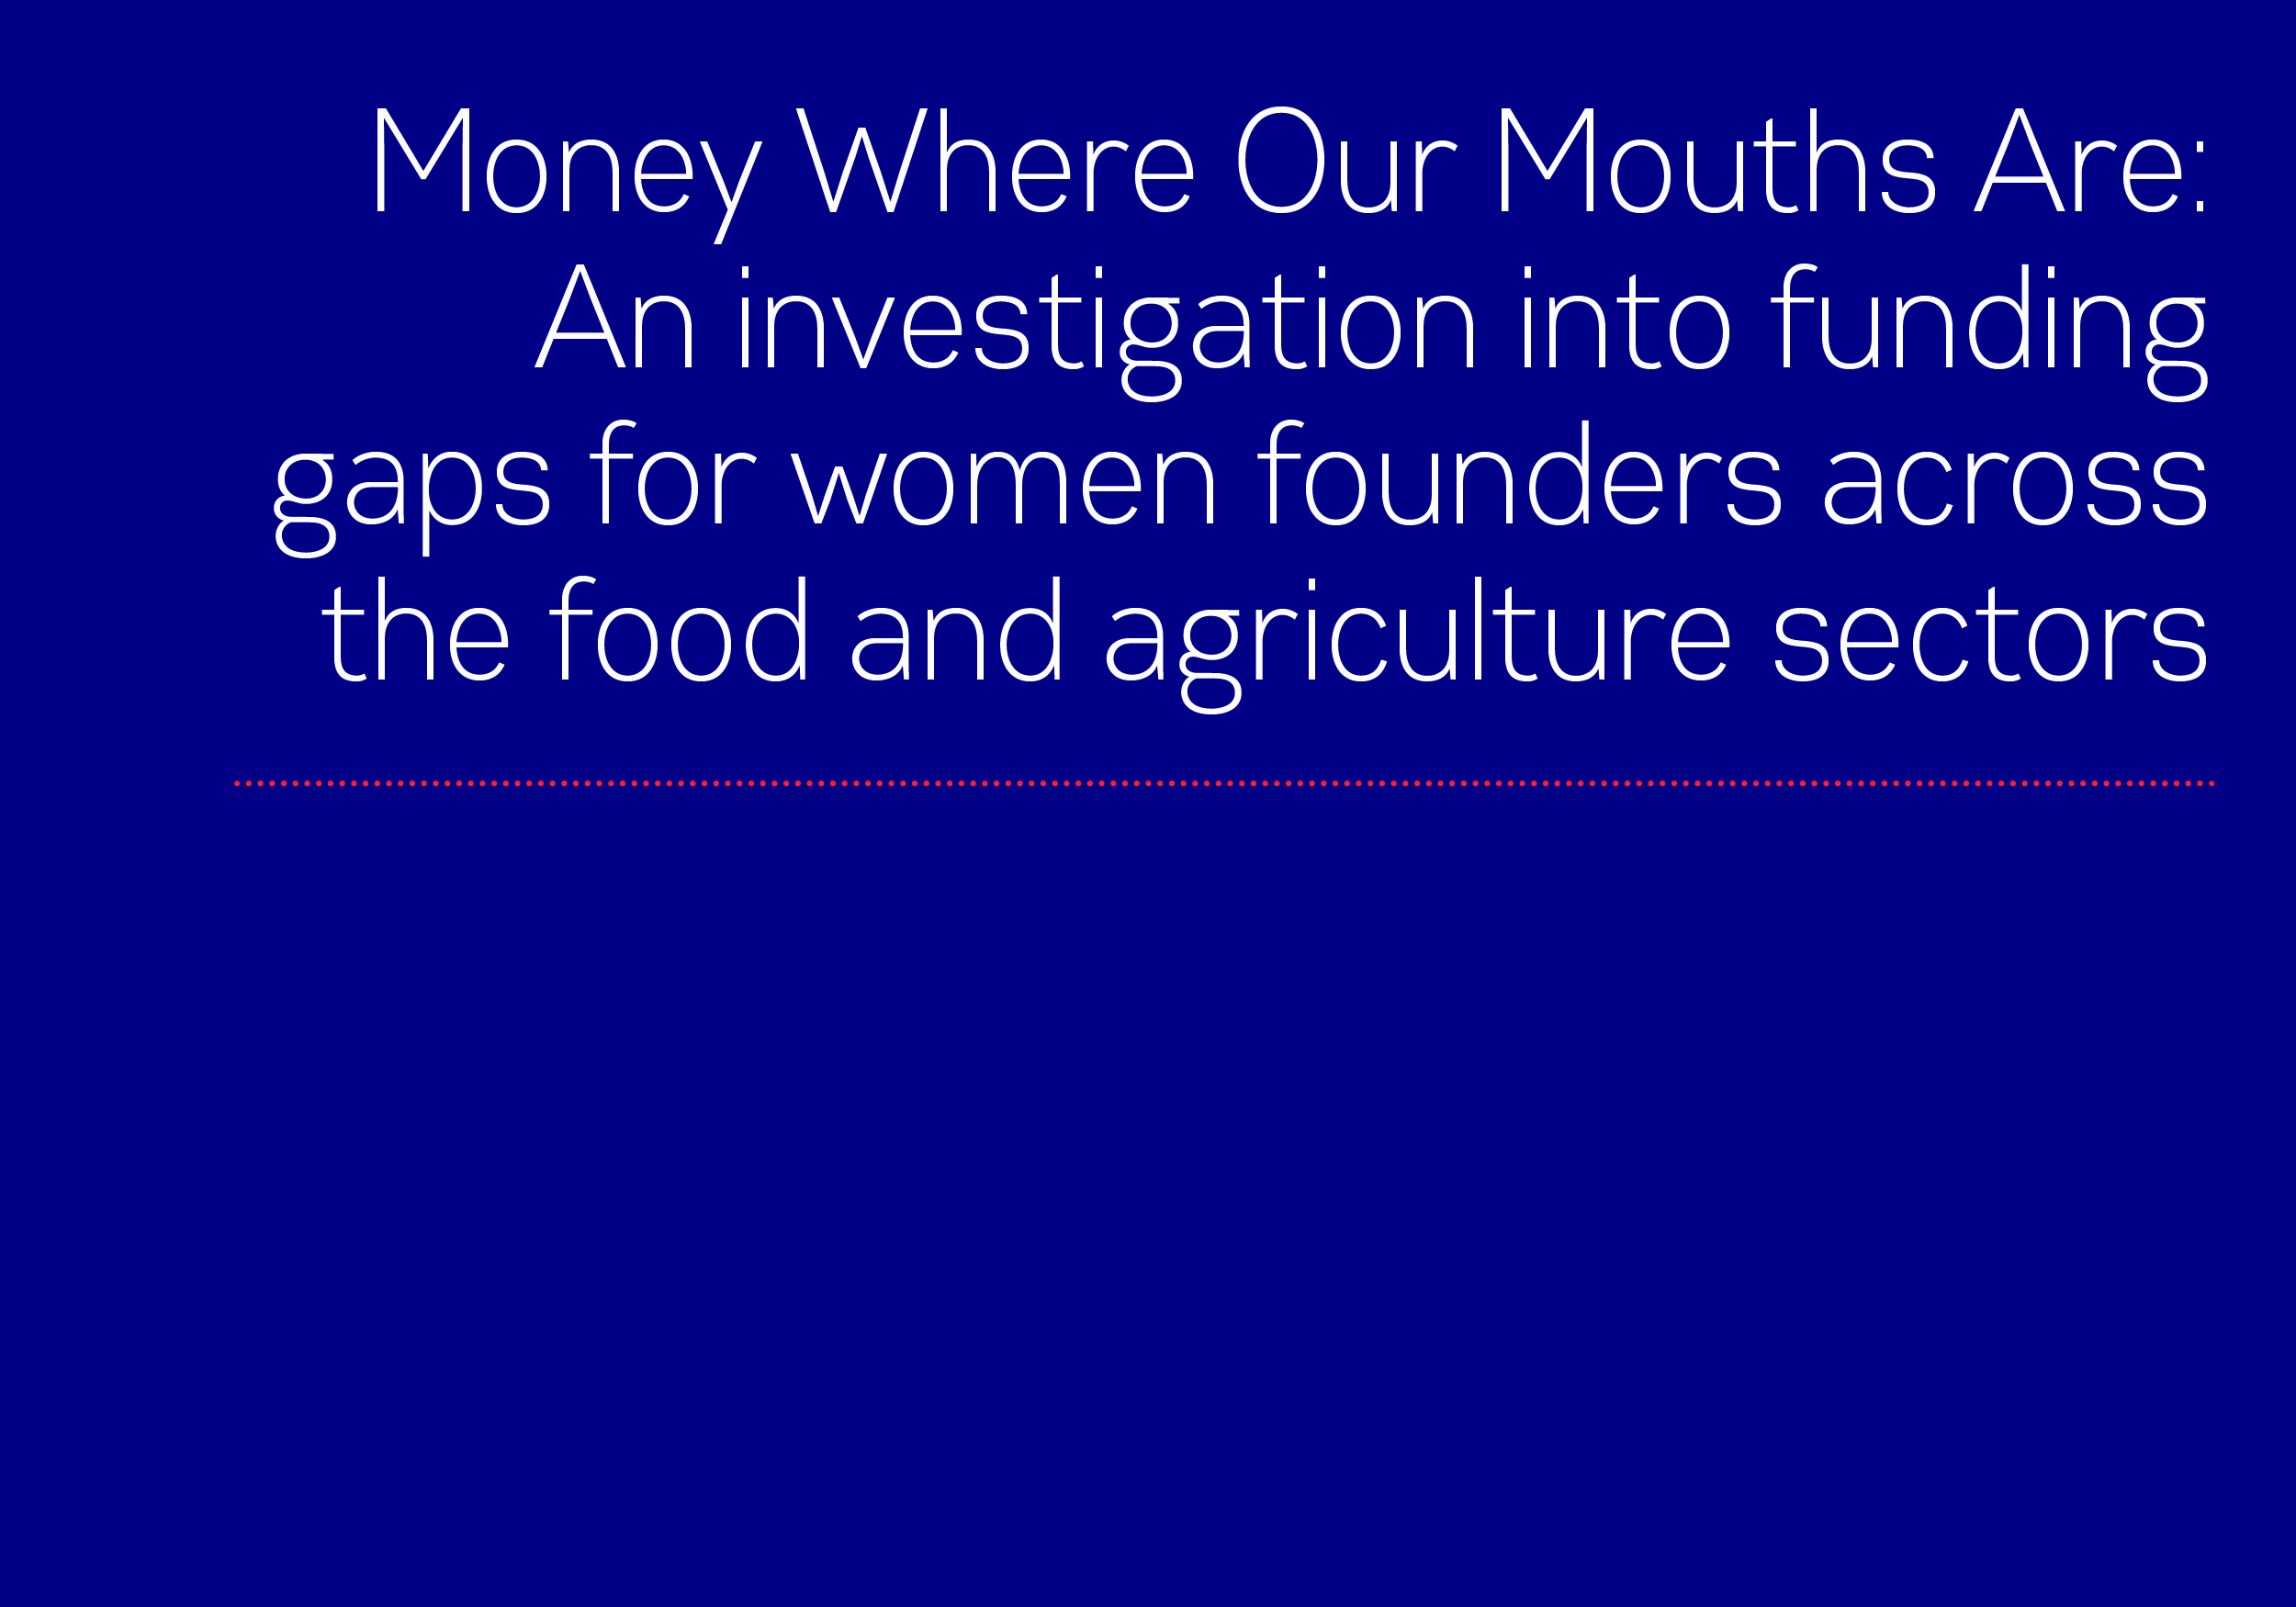 Money Where Our Mouths Are: An investigation into funding gaps for women founders across the food and agriculture sectors